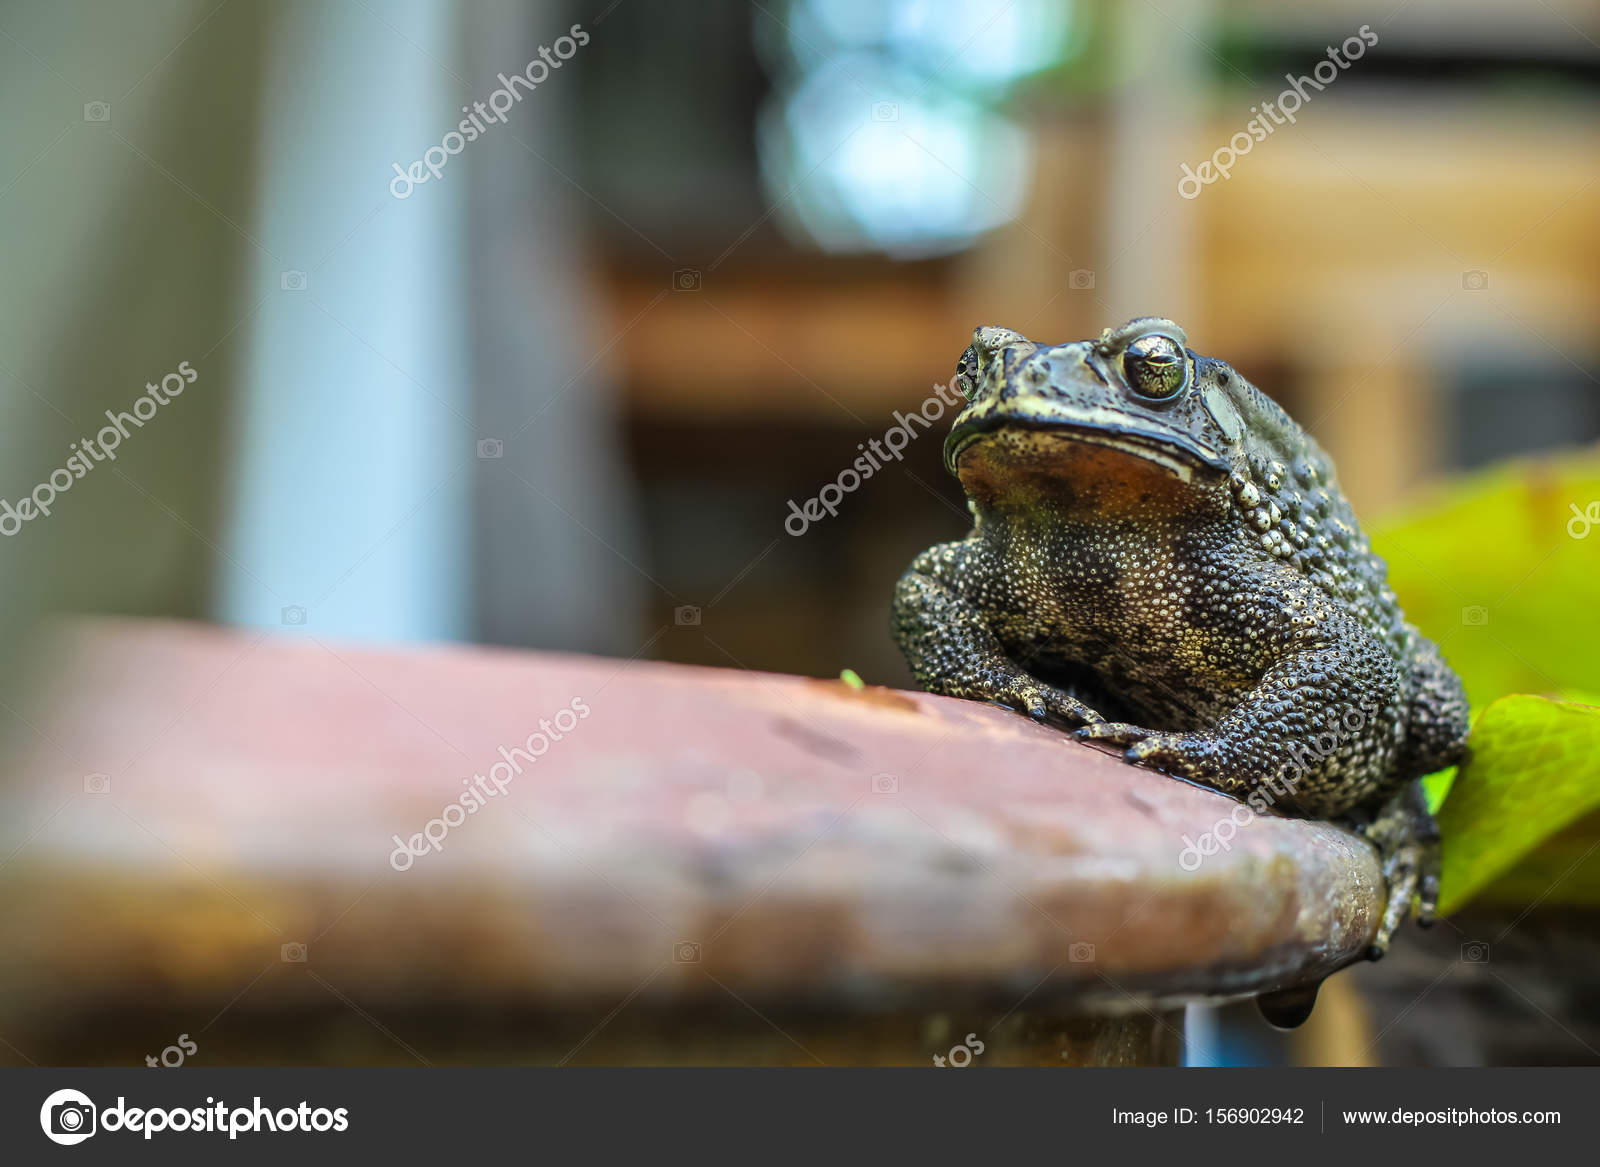 Big Toad On The Edge Of The Pot In The Garden. U2014 Photo By Iceindymusic